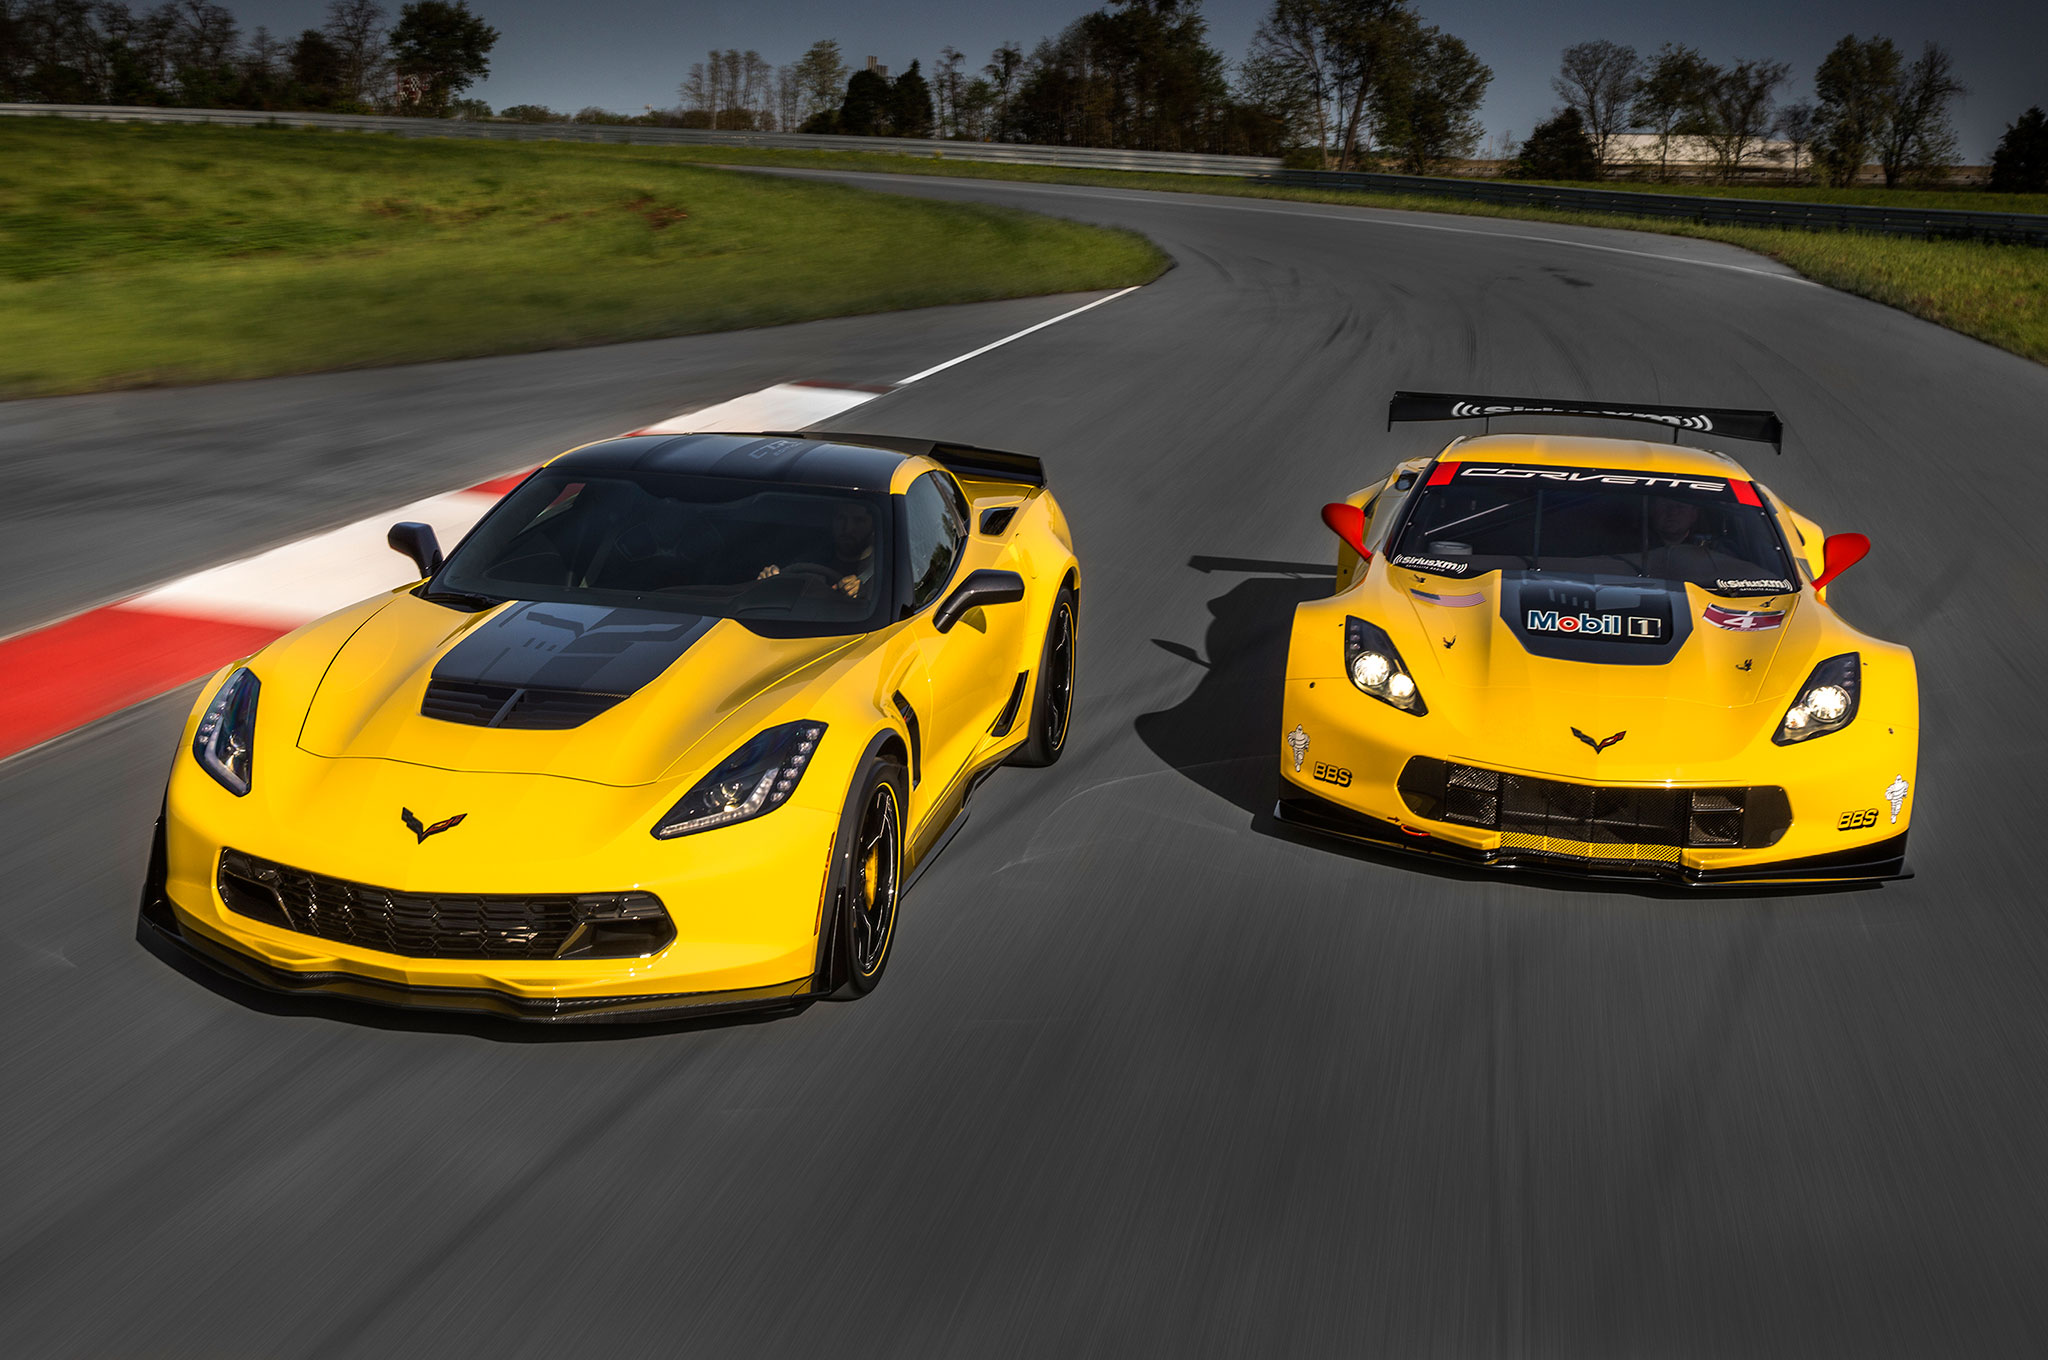 2016 Chevrolet Corvette Z06 C7R Edition With Racing Car 1